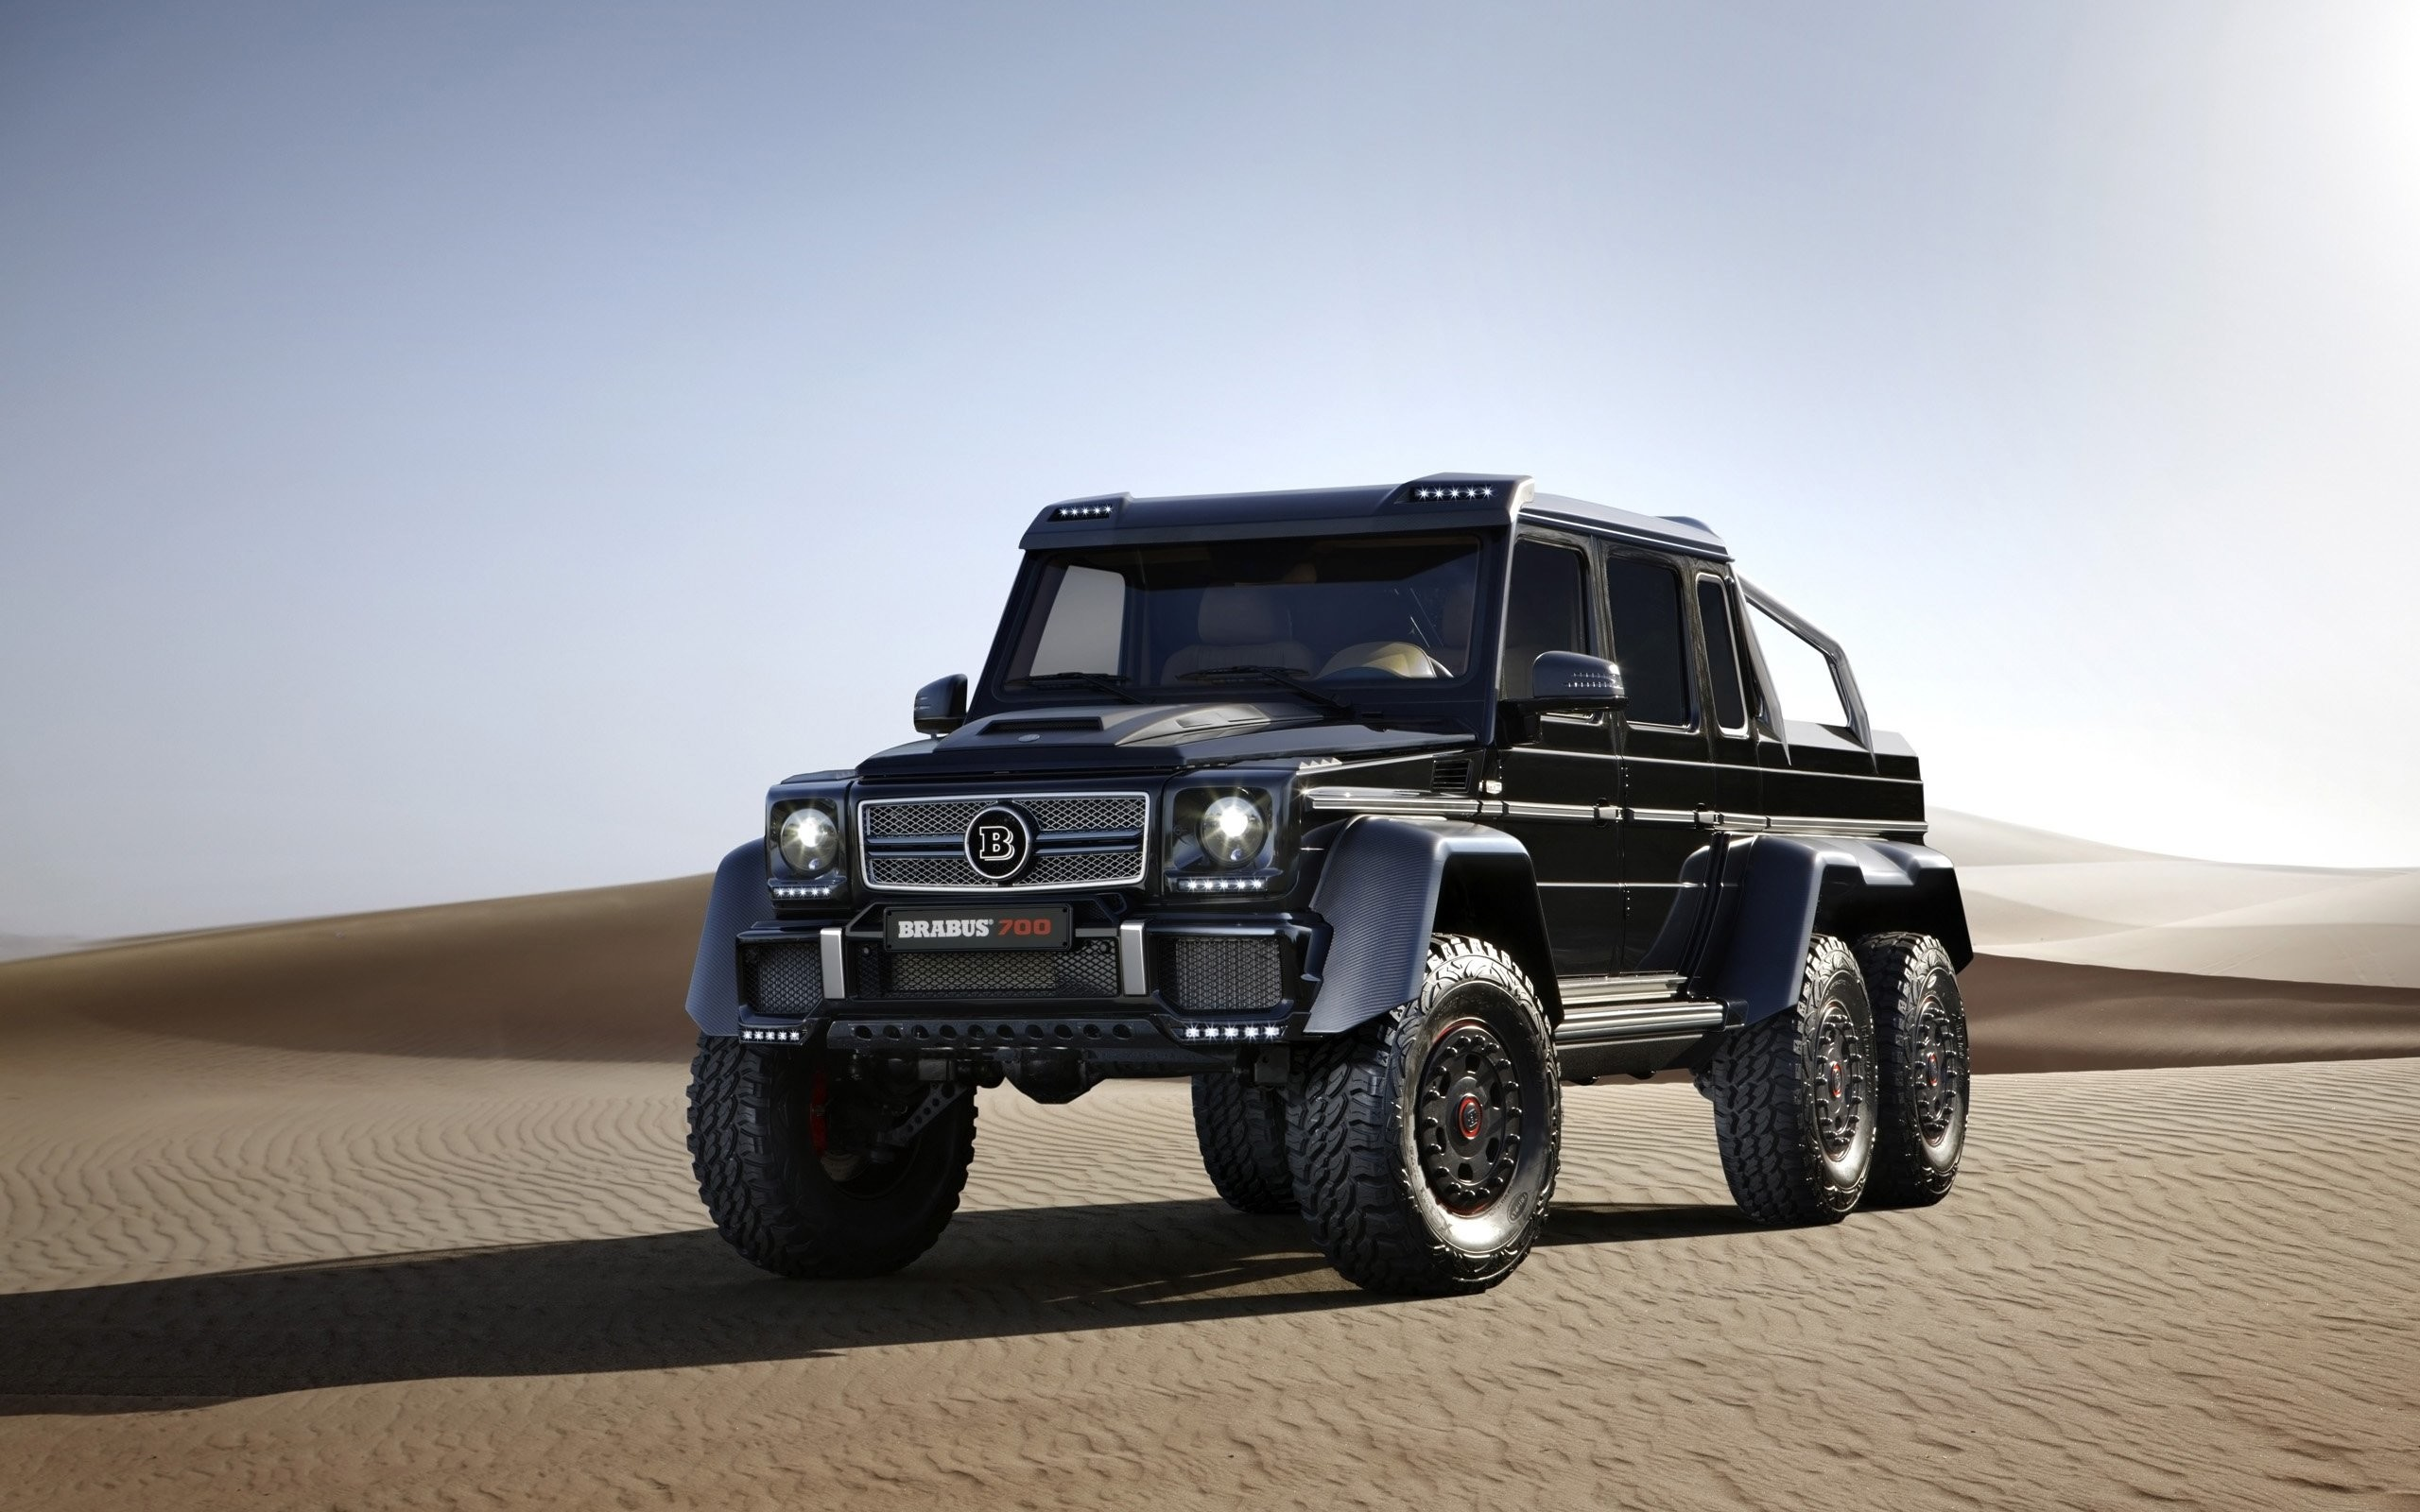 mercedes brabus wallpaper (65 images)1920x1200 brabus mercedes benz s rocket desert gold wallpaper hd car 1920Ã\u20141200 · download